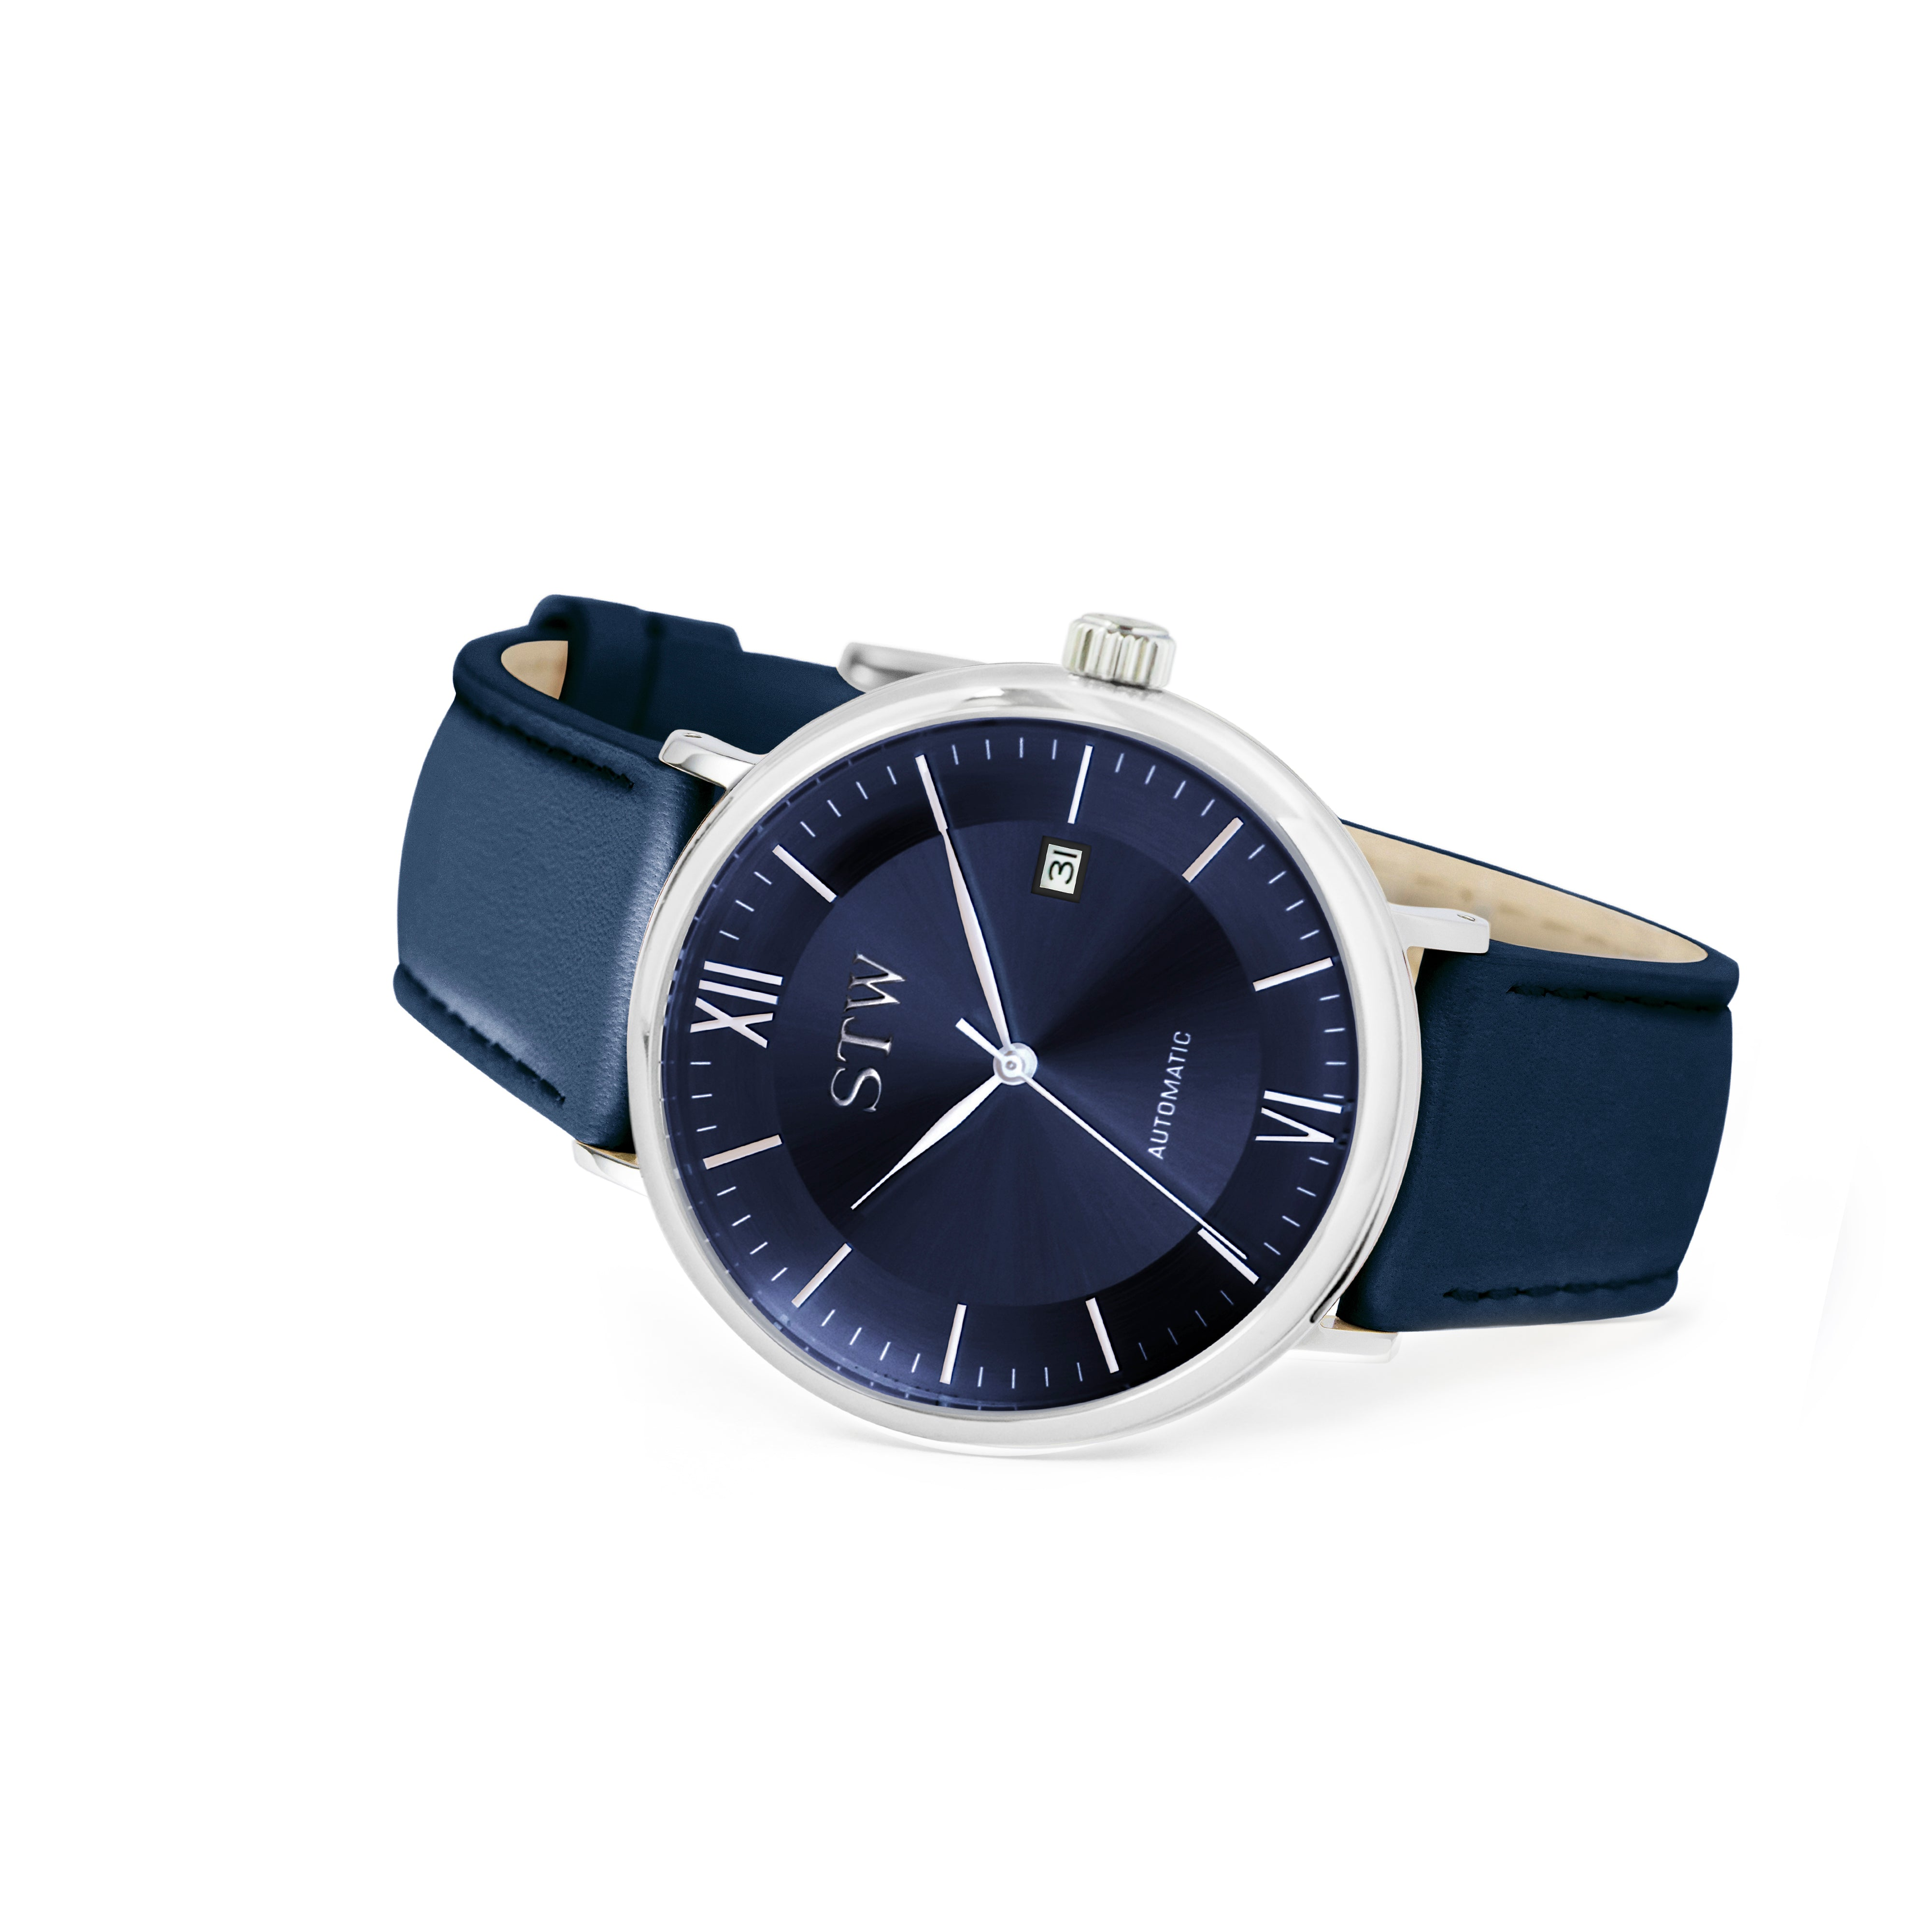 THE AUTO -  BLUE DIAL / BLUE LEATHER STRAP WATCH